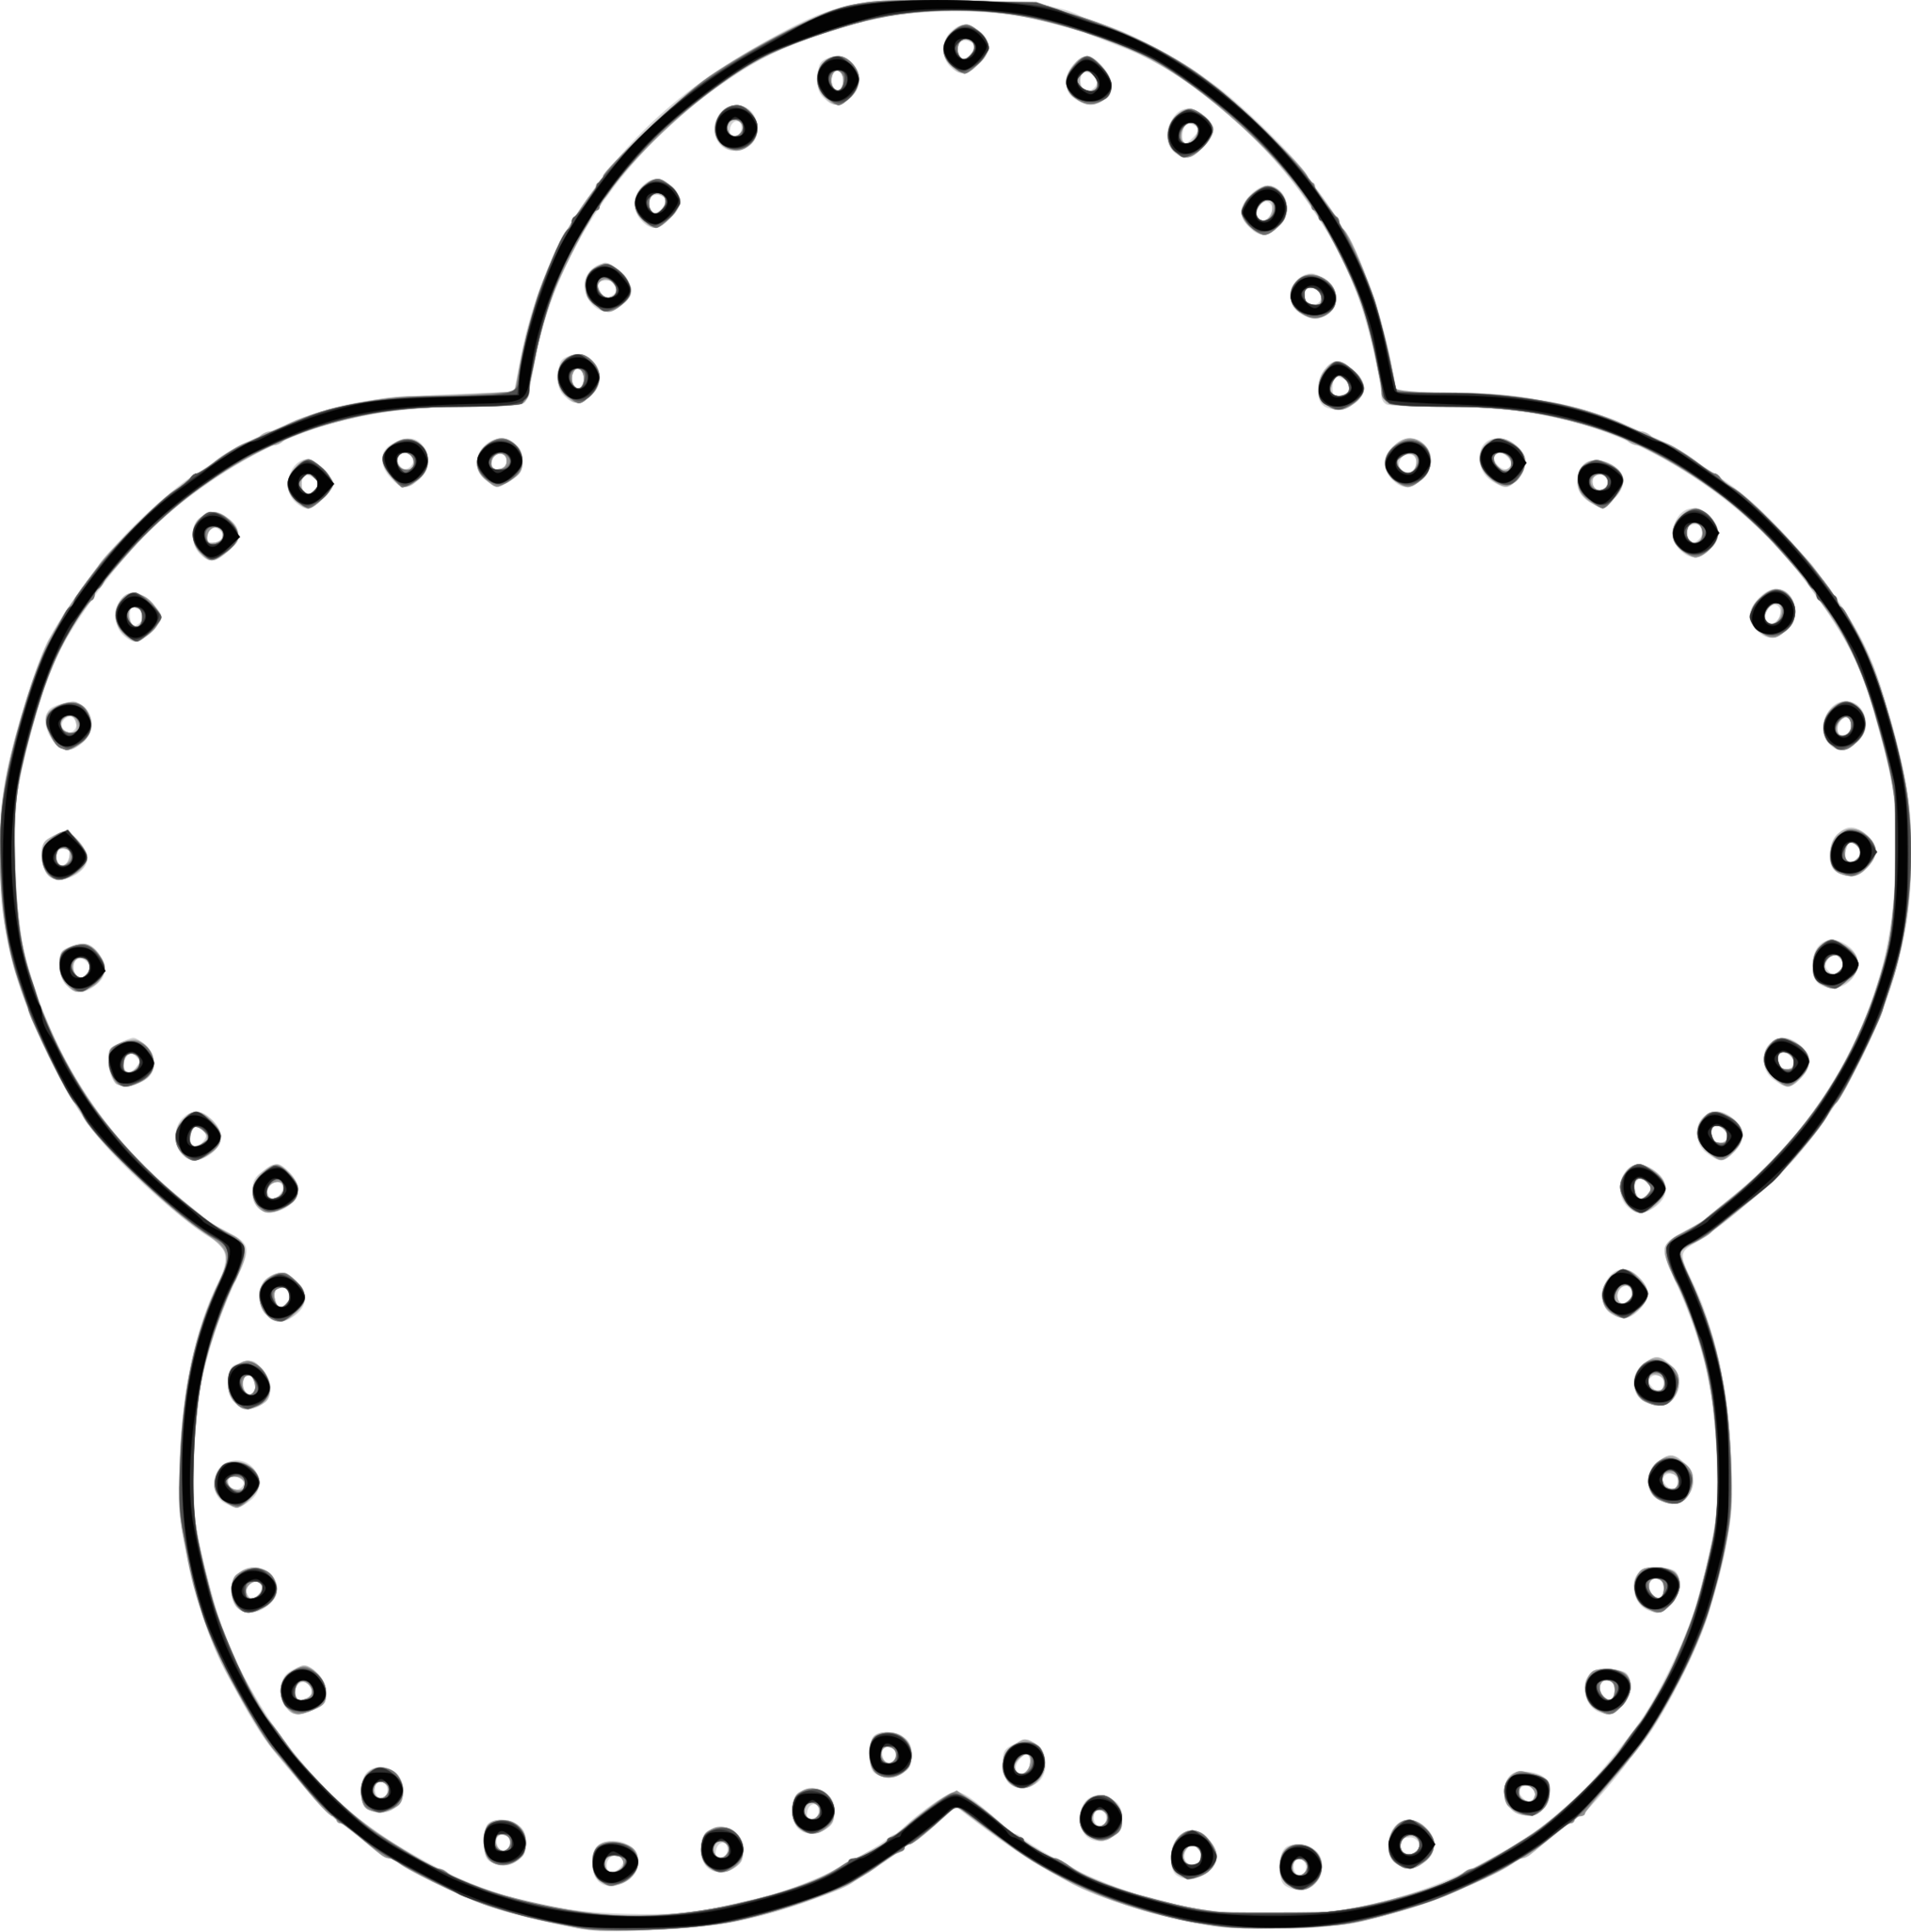 Scallop Circle Template Png Clipart Free To Use Clip Art Resource Clipart Best Clipart Best Circle Template Free Clip Art Simple Scrapbook